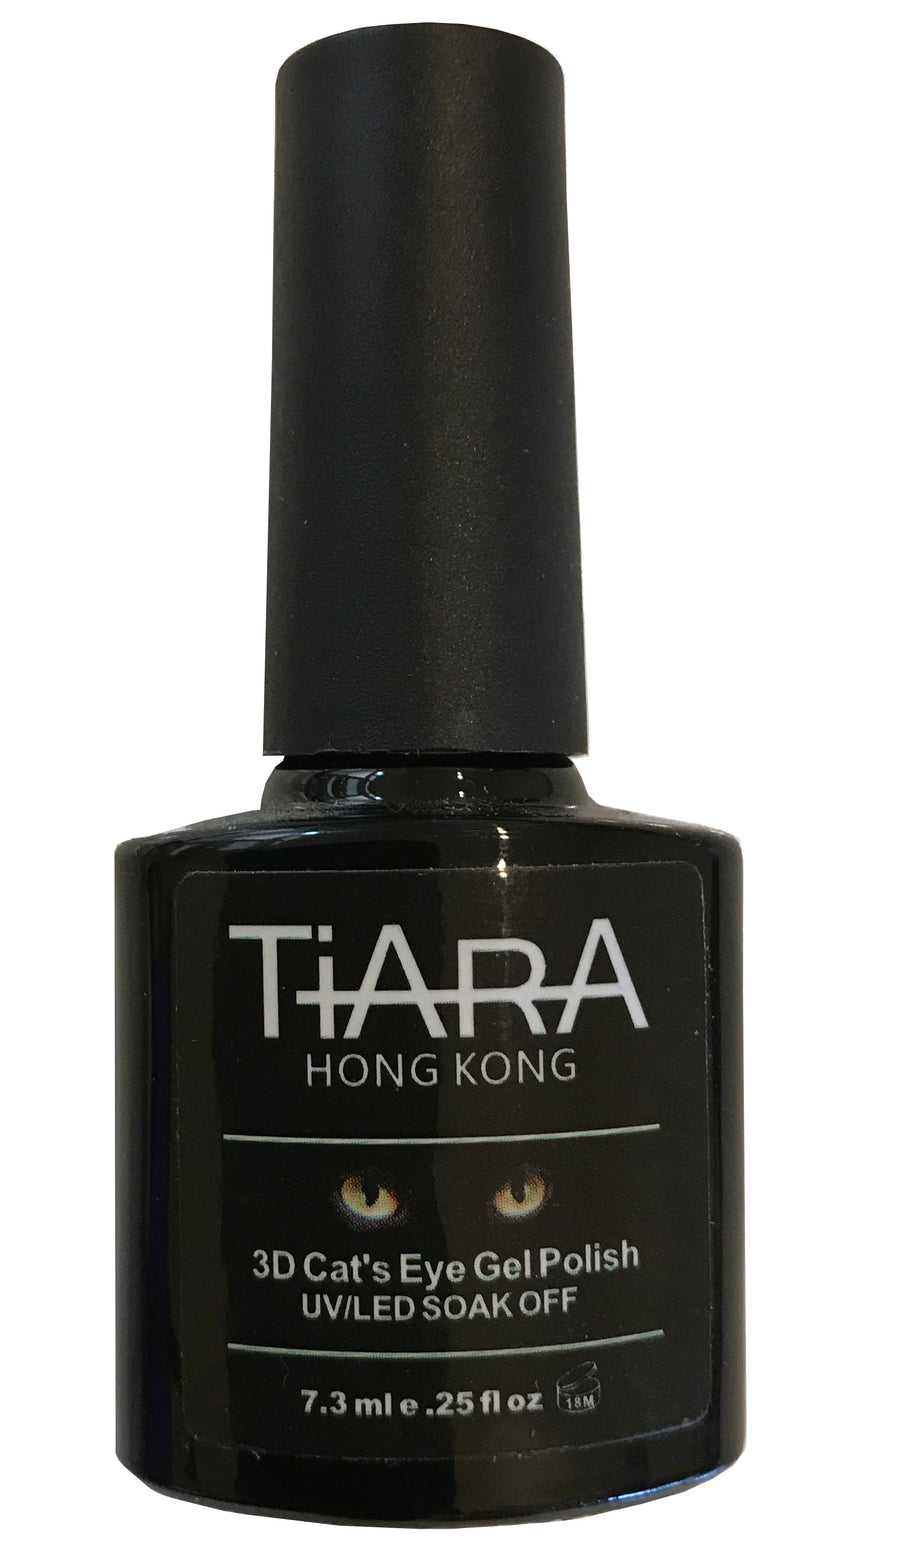 TiARA 3D CAT'S EYE GEL POLISH & MAGIC PLATE - 02